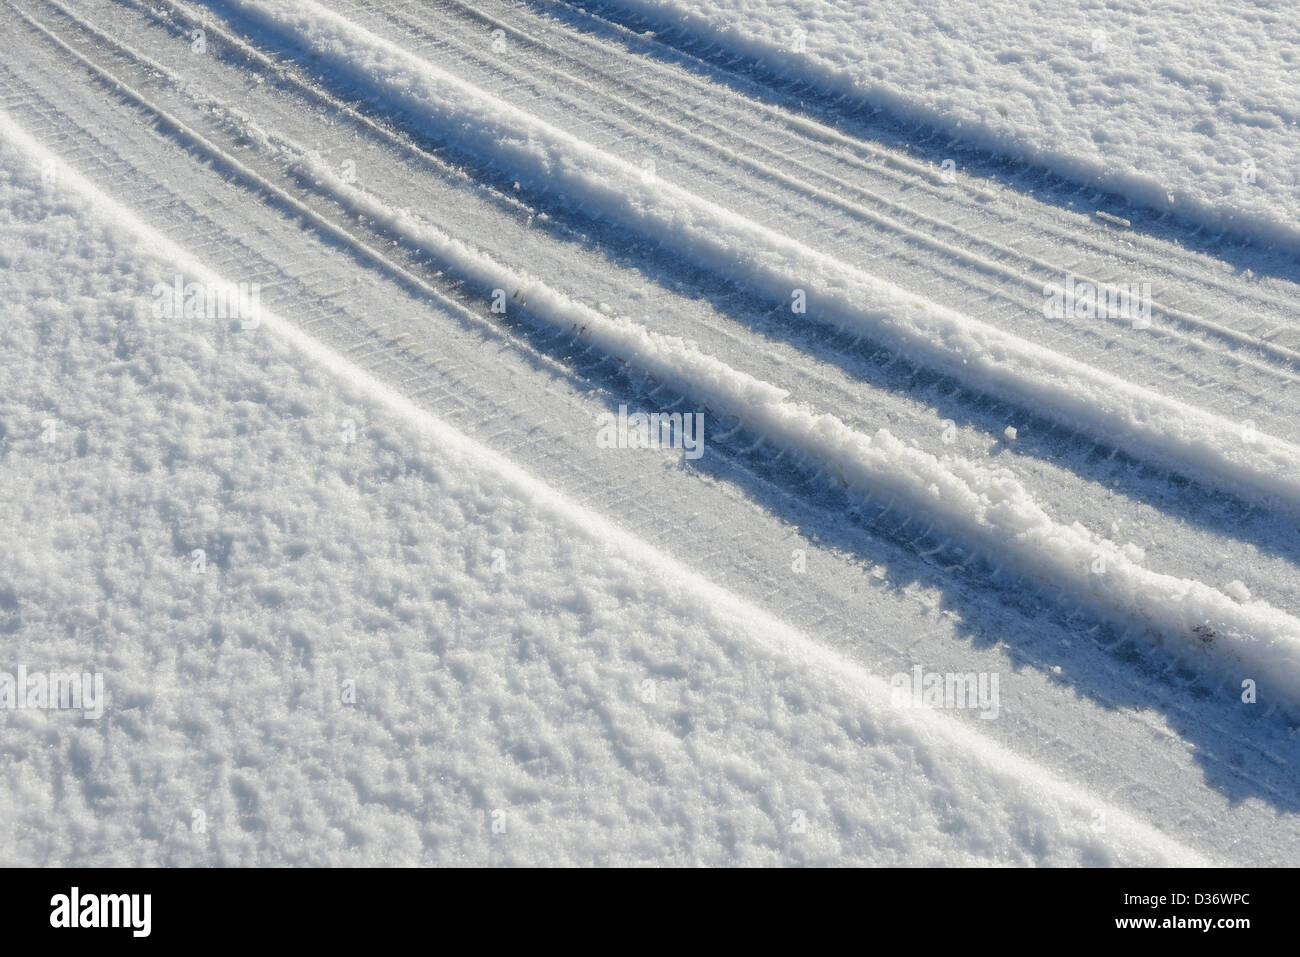 Car tyre tracks in fresh snow - Stock Image